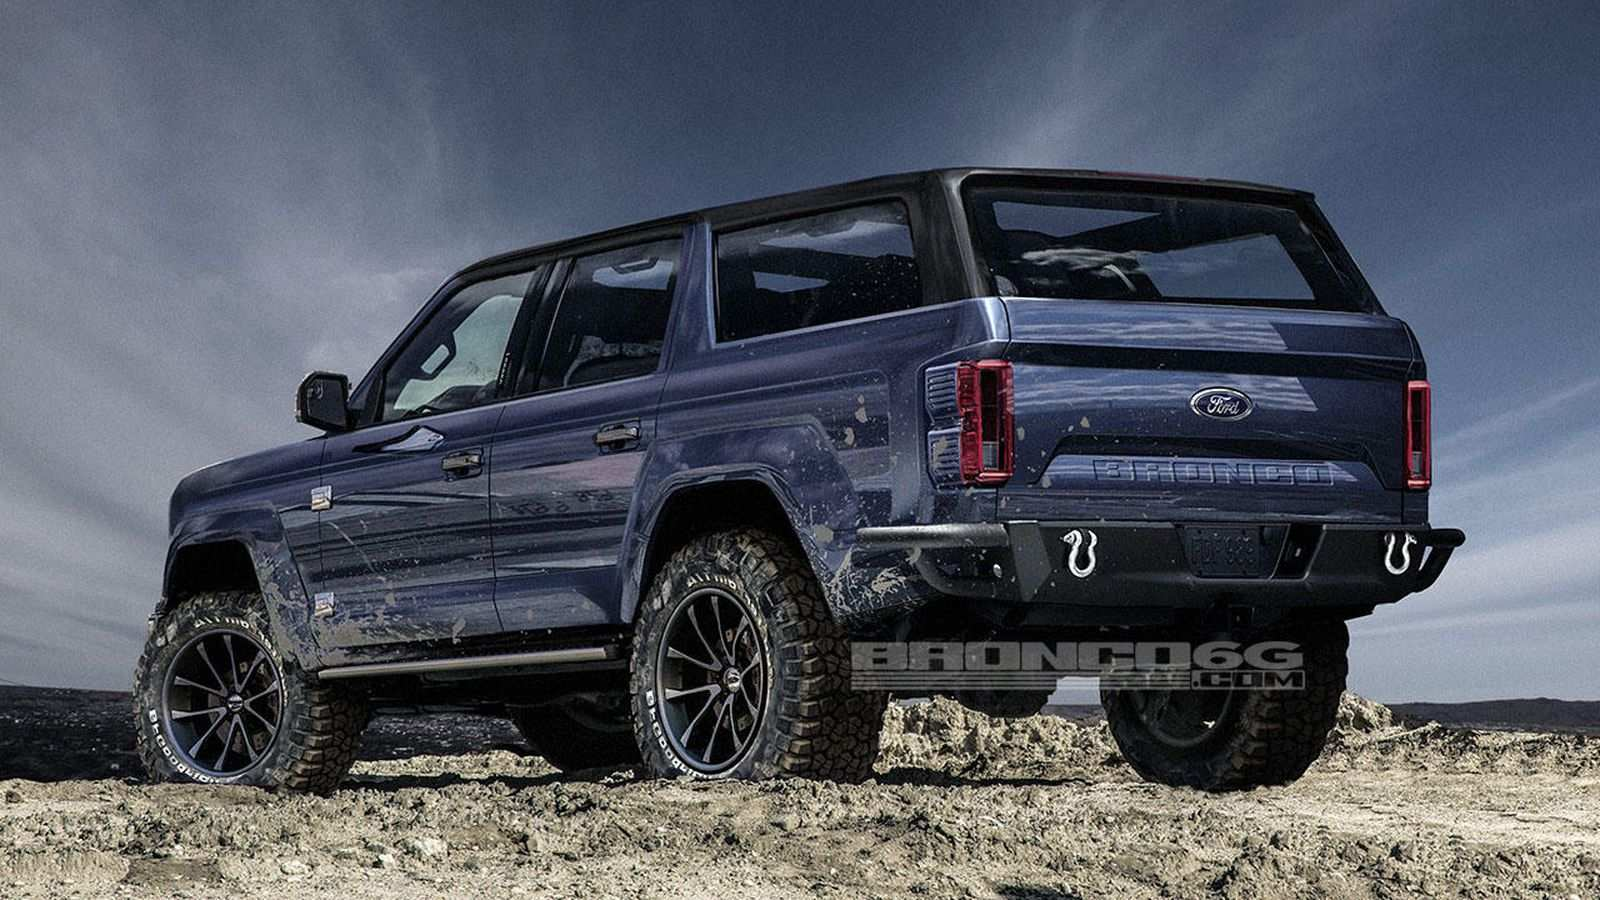 95 Best 2020 Ford Bronco Wallpaper Price Design And Review